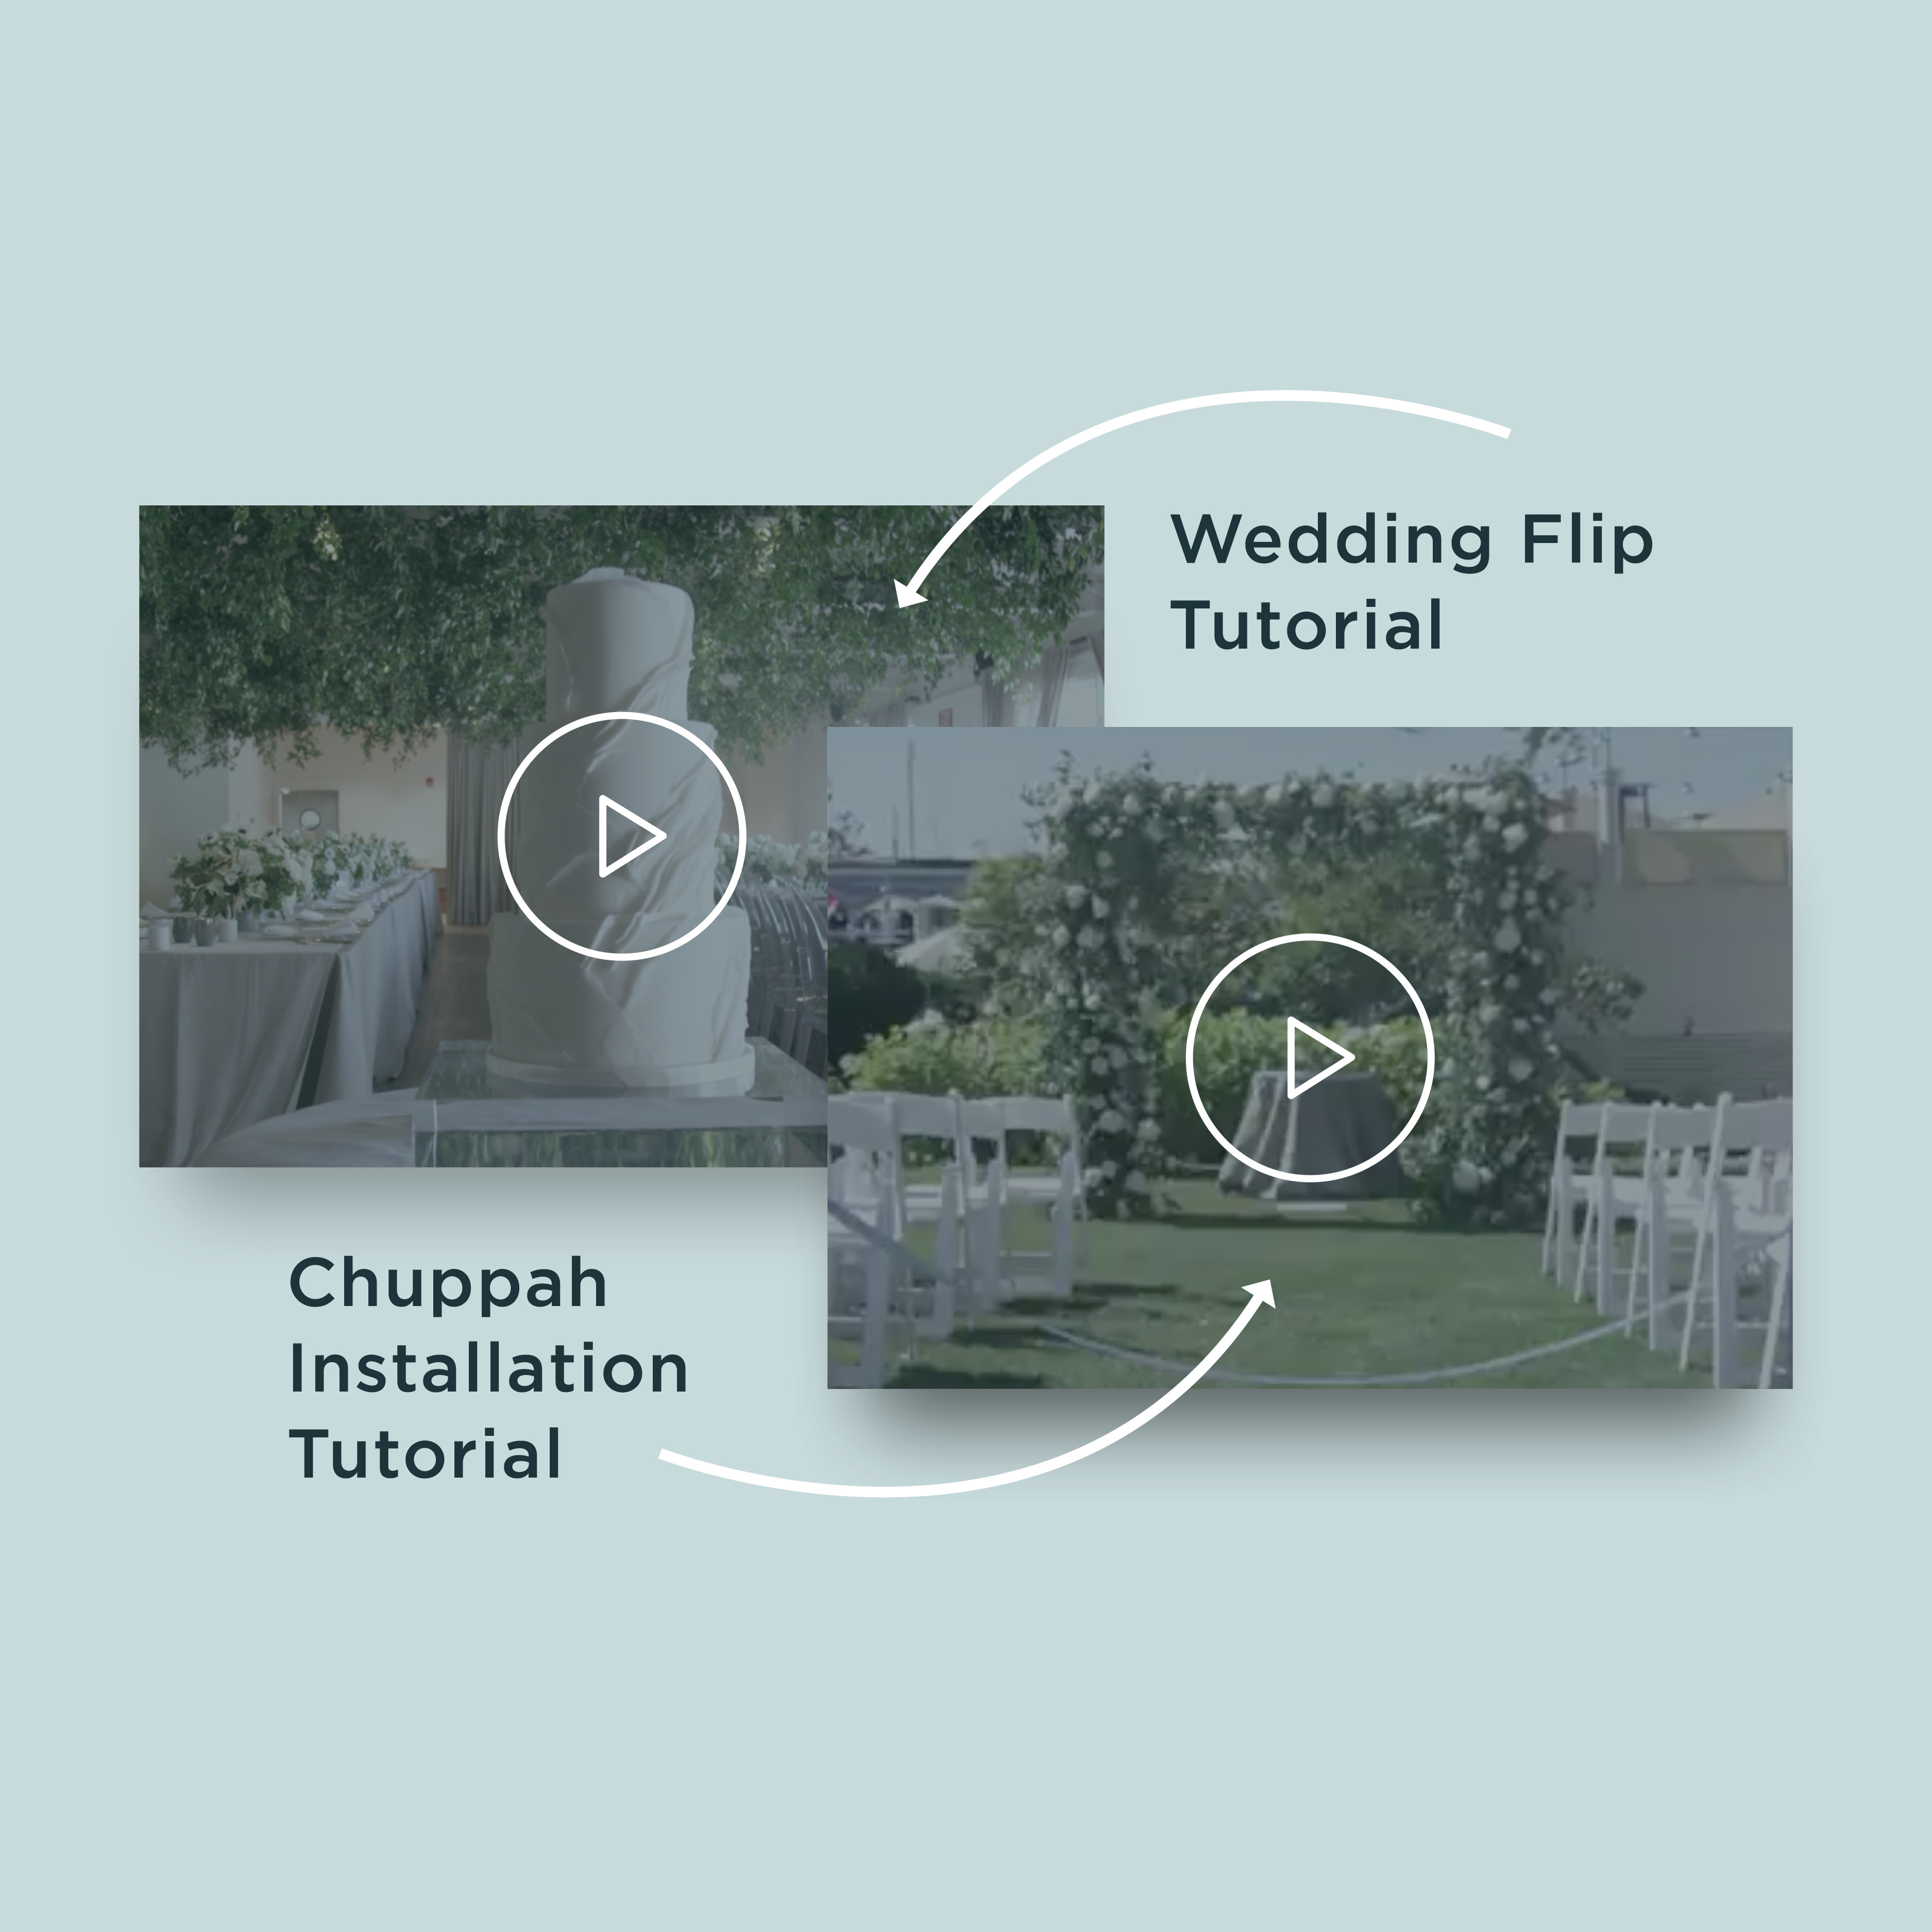 Buy The Ultimate Guide to Wedding Planning & Design in the next 30 minutes to receive: